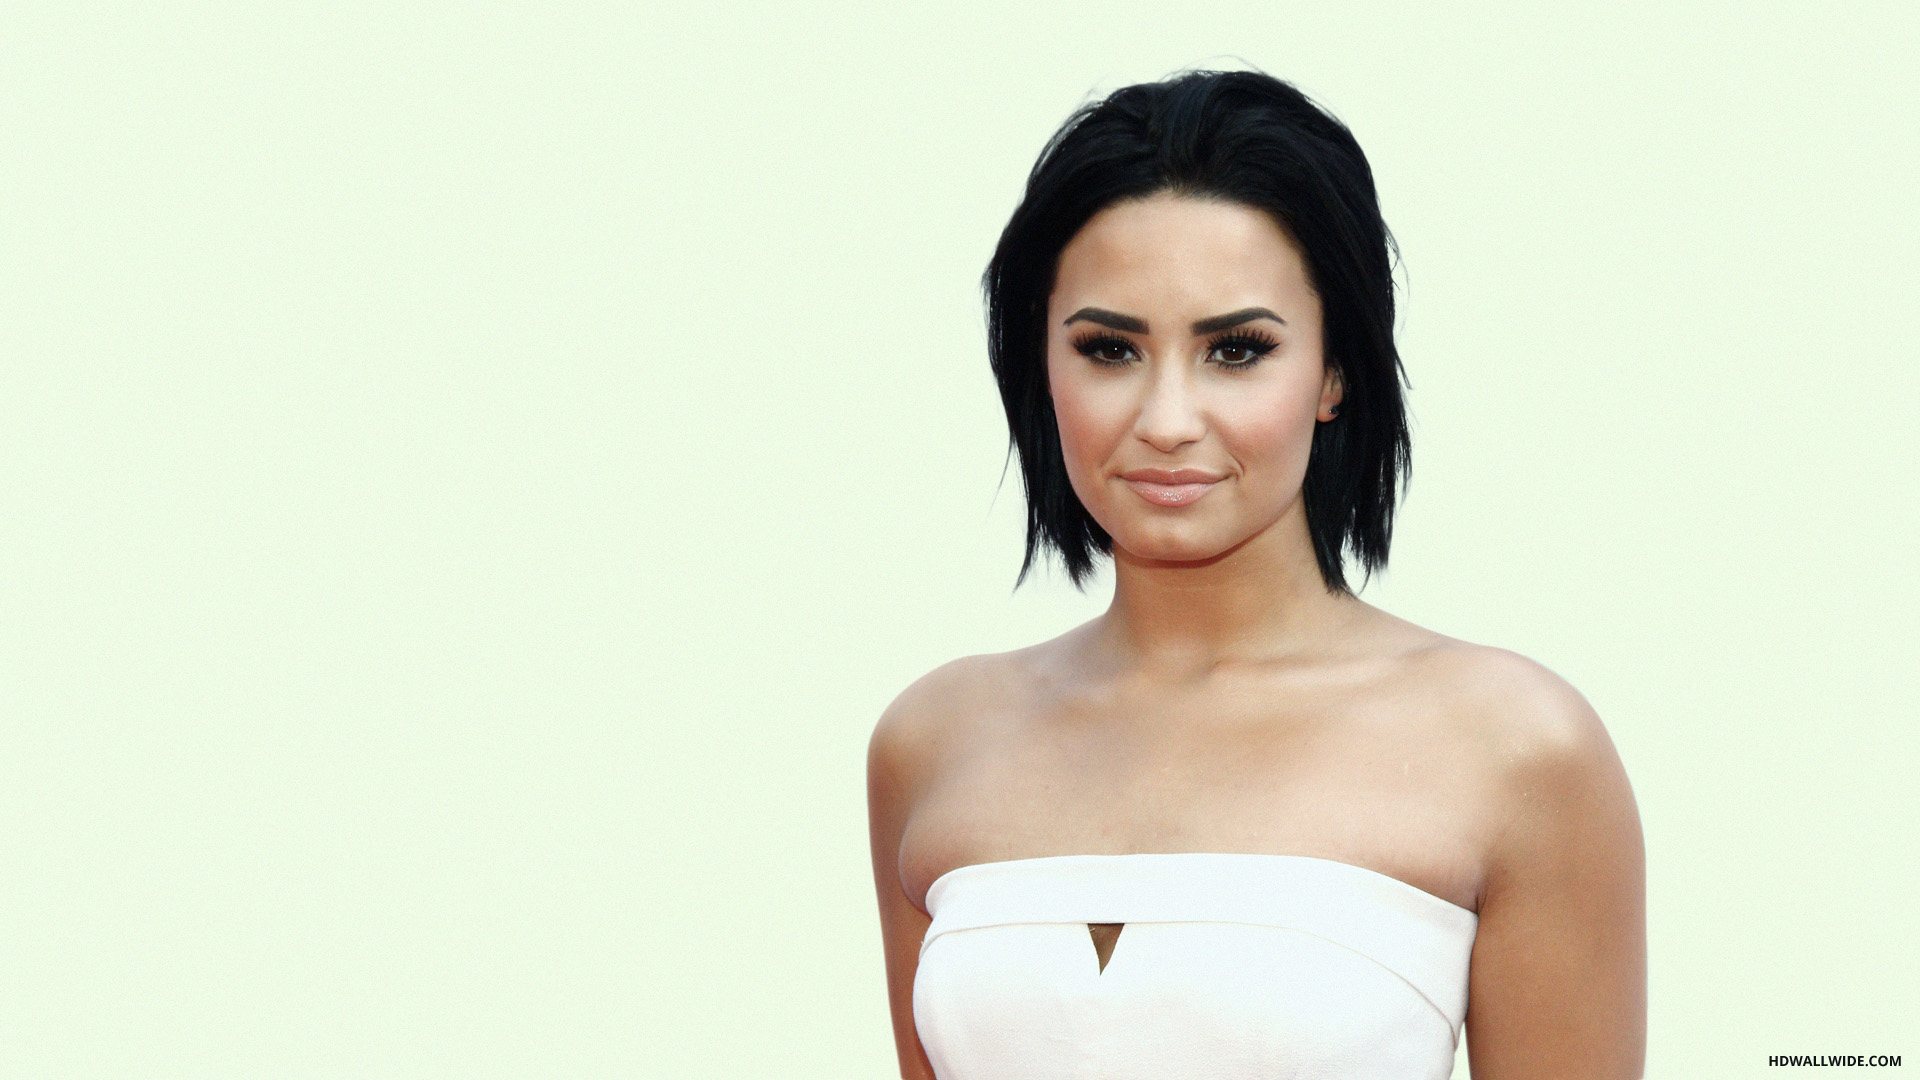 Demi Lovato HD Wallpaper Background Upload at October 23 2015 1920x1080